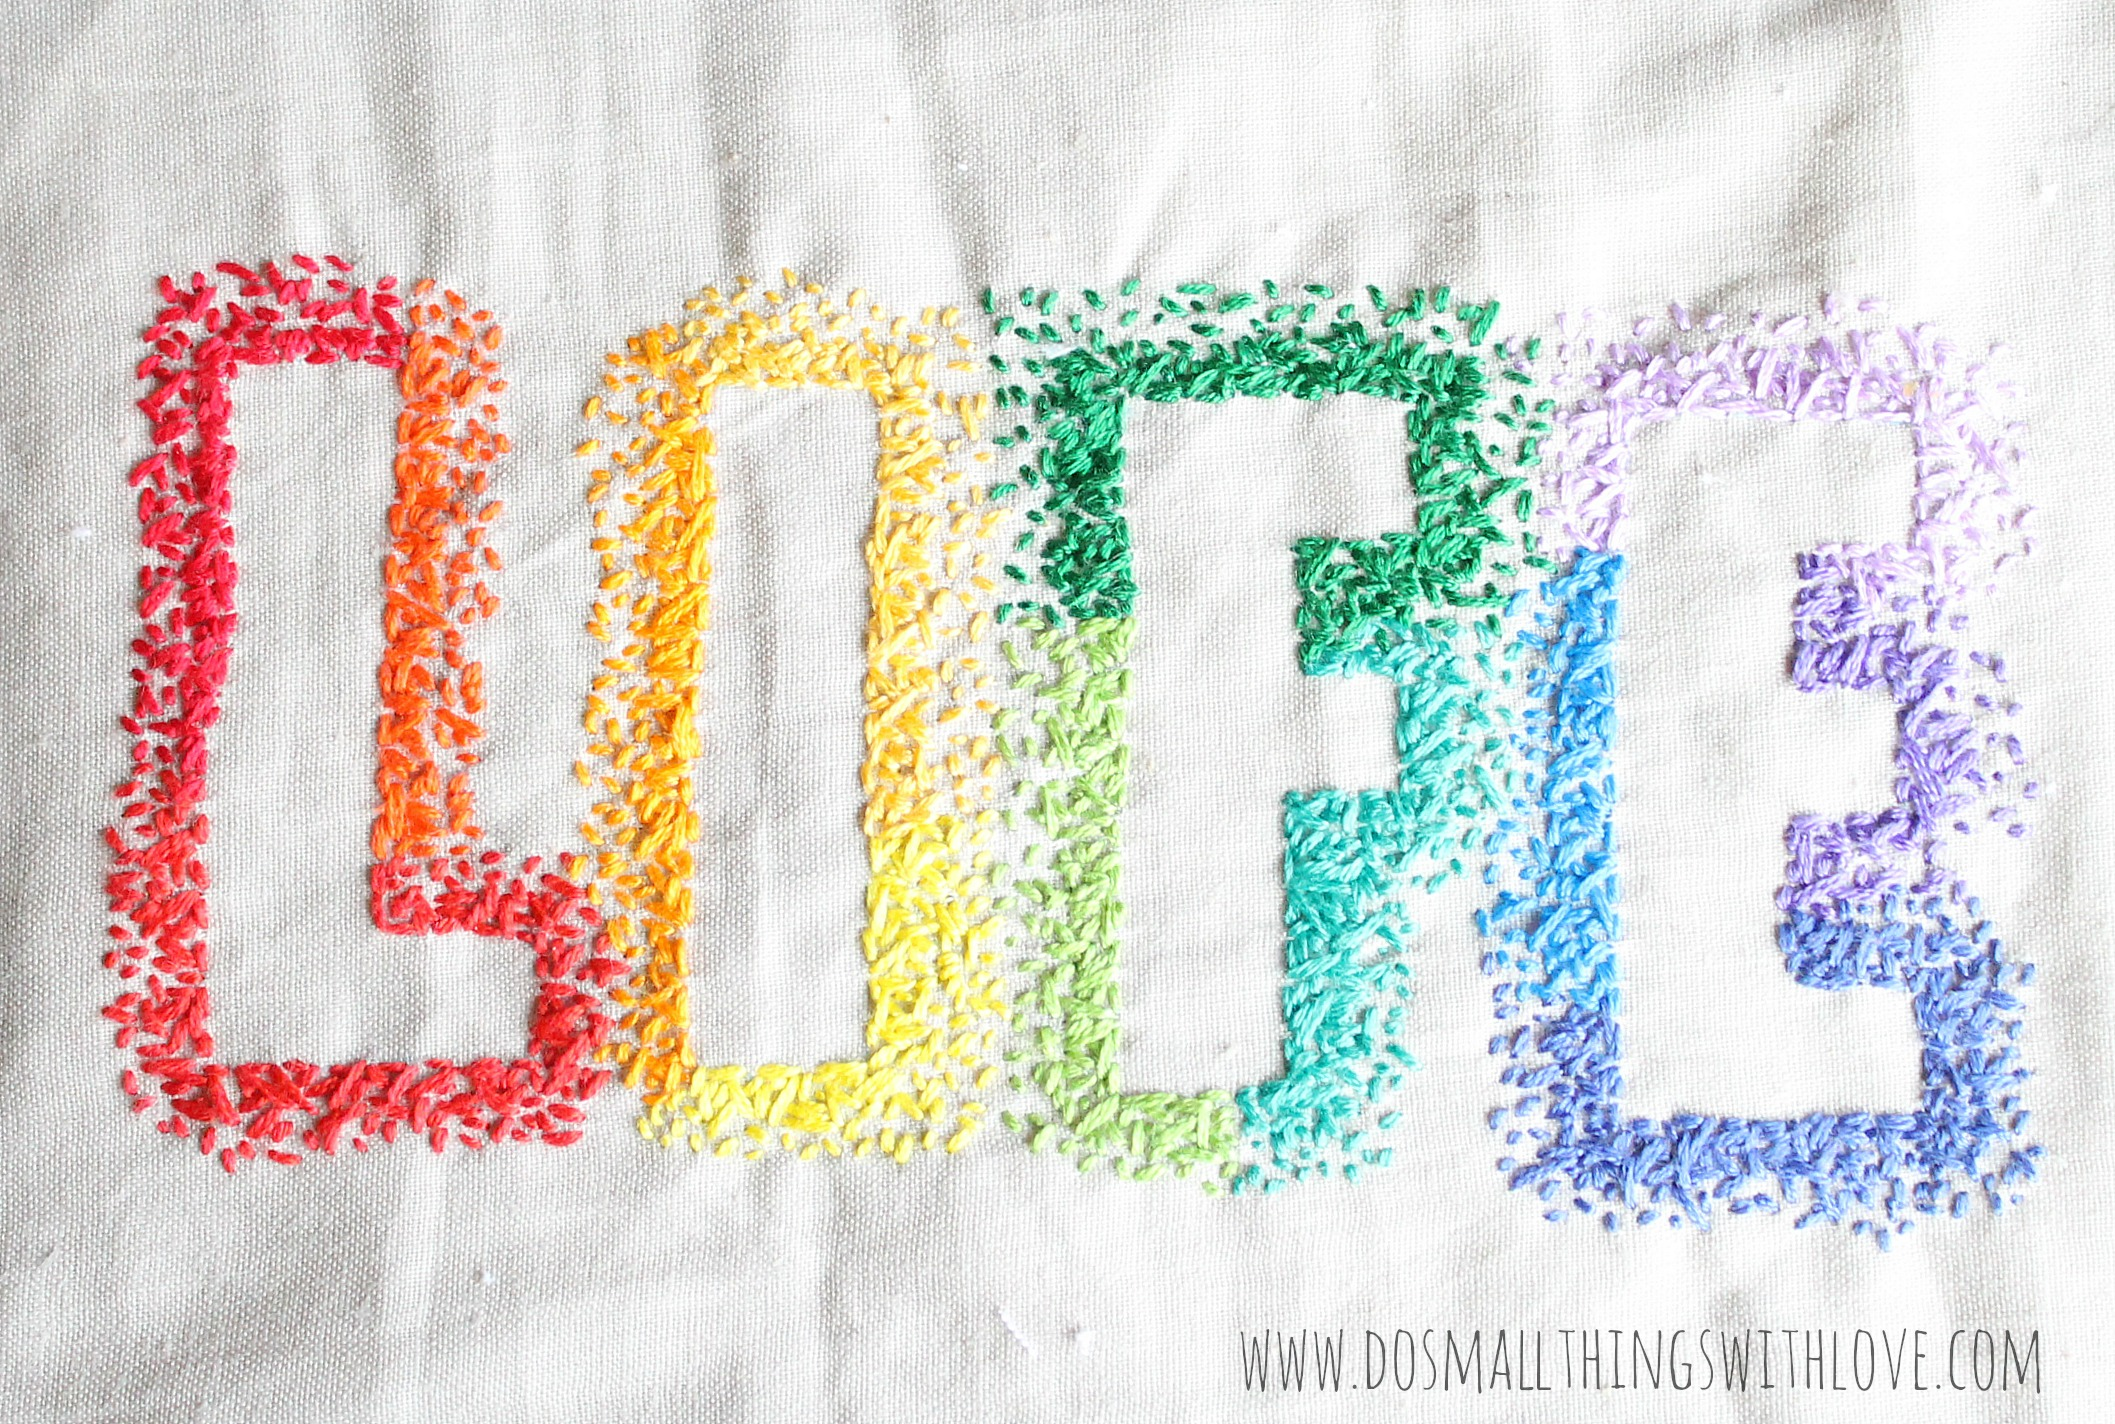 Pro life embroidery confetti stitch do small things